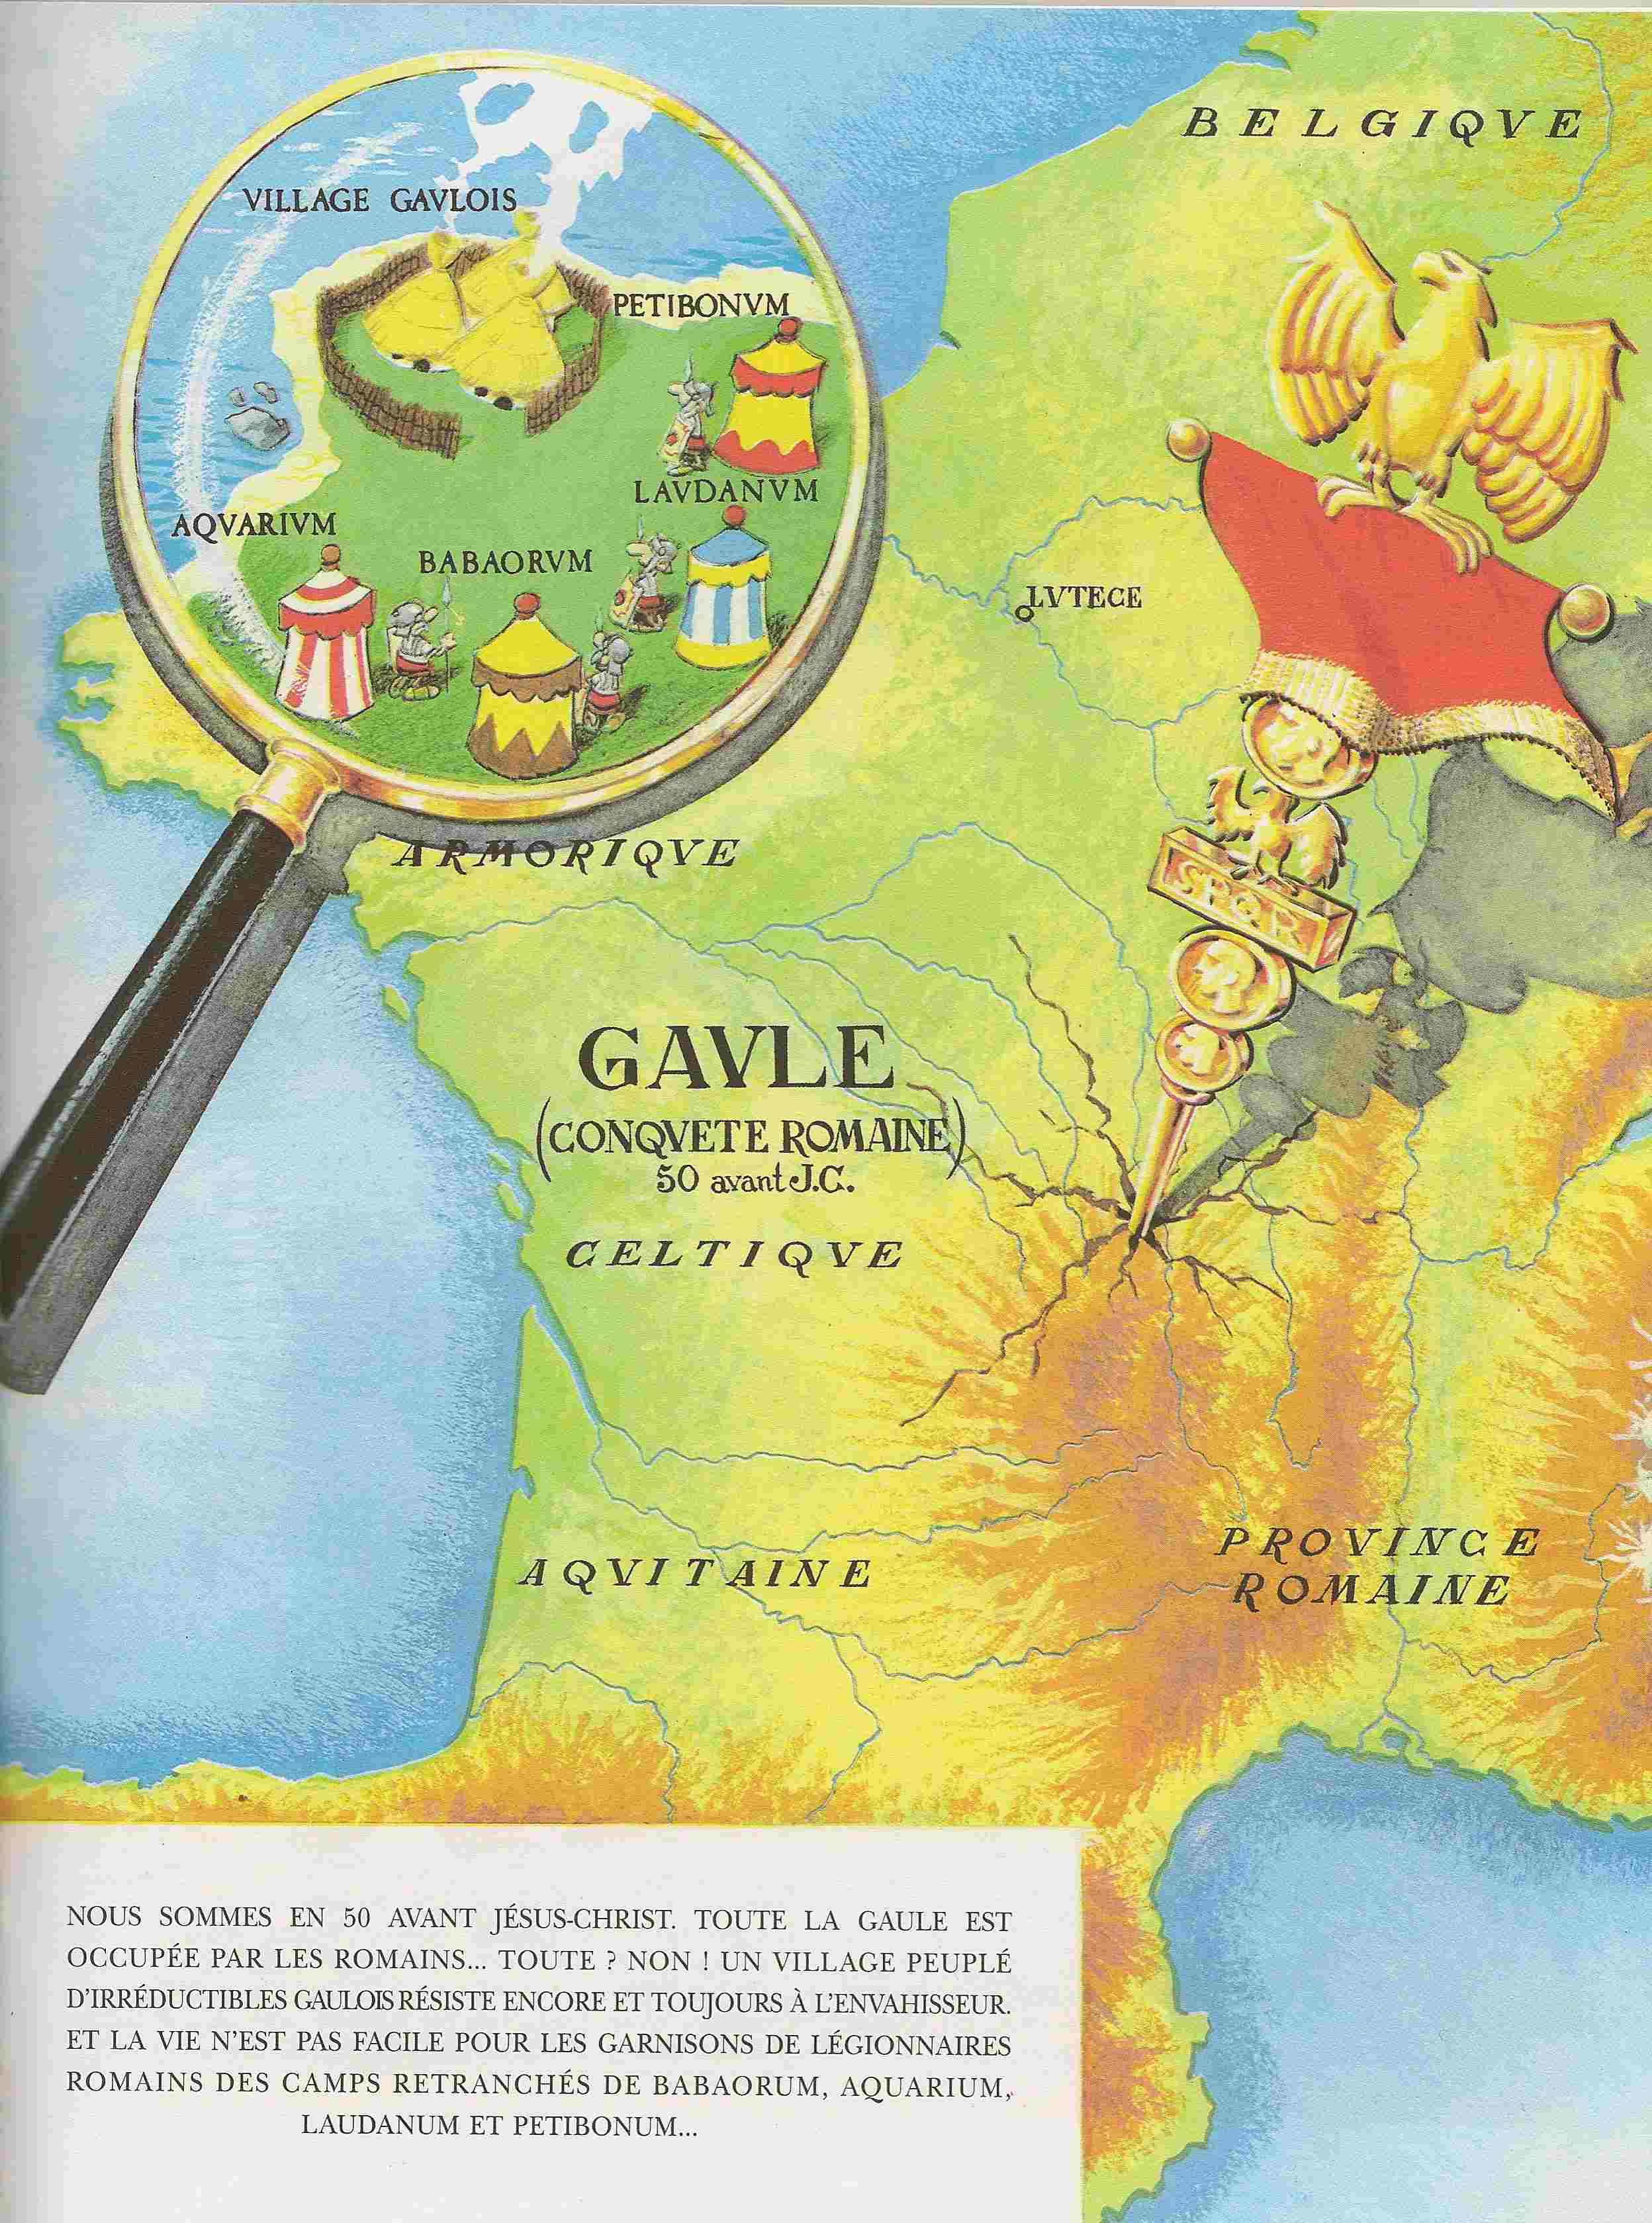 Tour Books On Cite De Carassonne Caste France